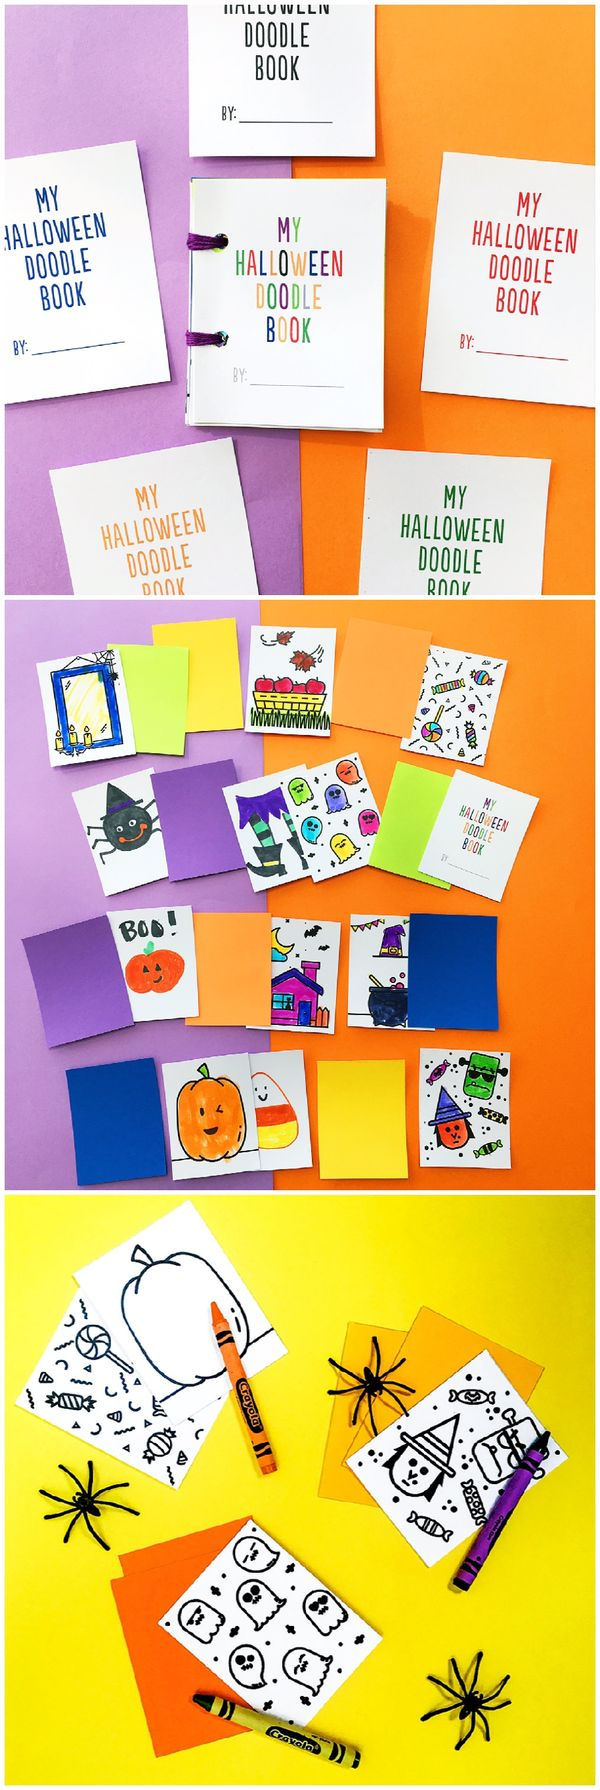 DIY Mini Halloween Doodle Books Free Printables Cute Art Project For Kids Or Non Candy Favors